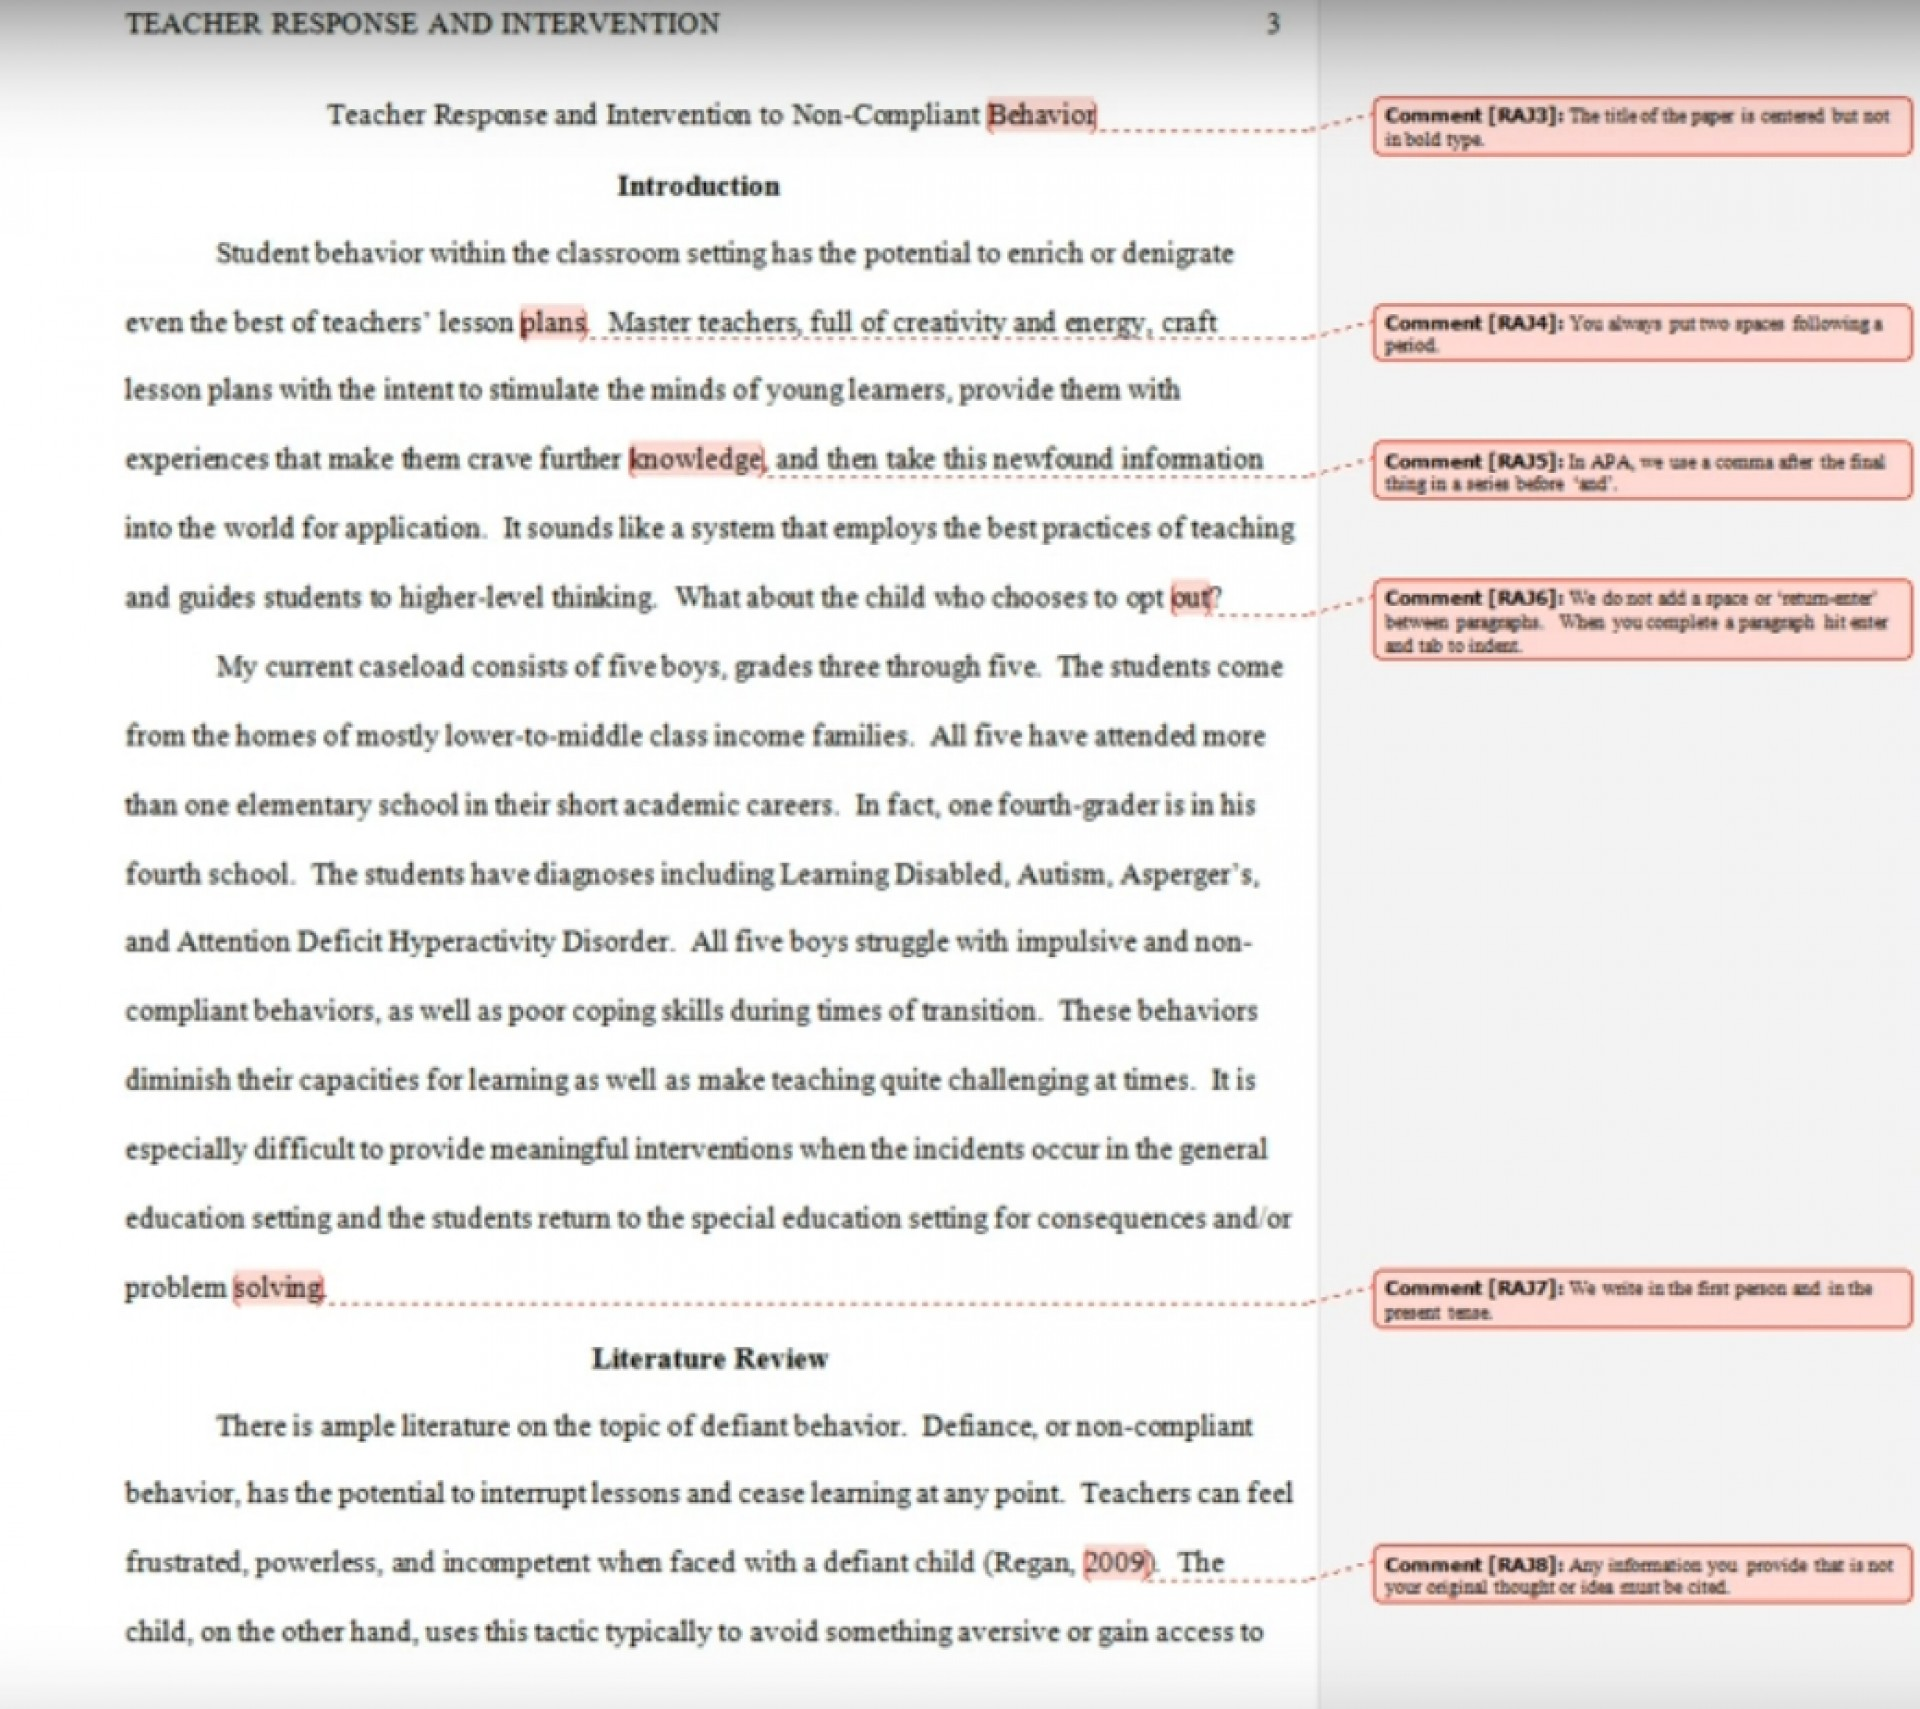 004 Introduction Research Paper Sample Good Introductions For Papers Beautiful Examples Pdf 1920